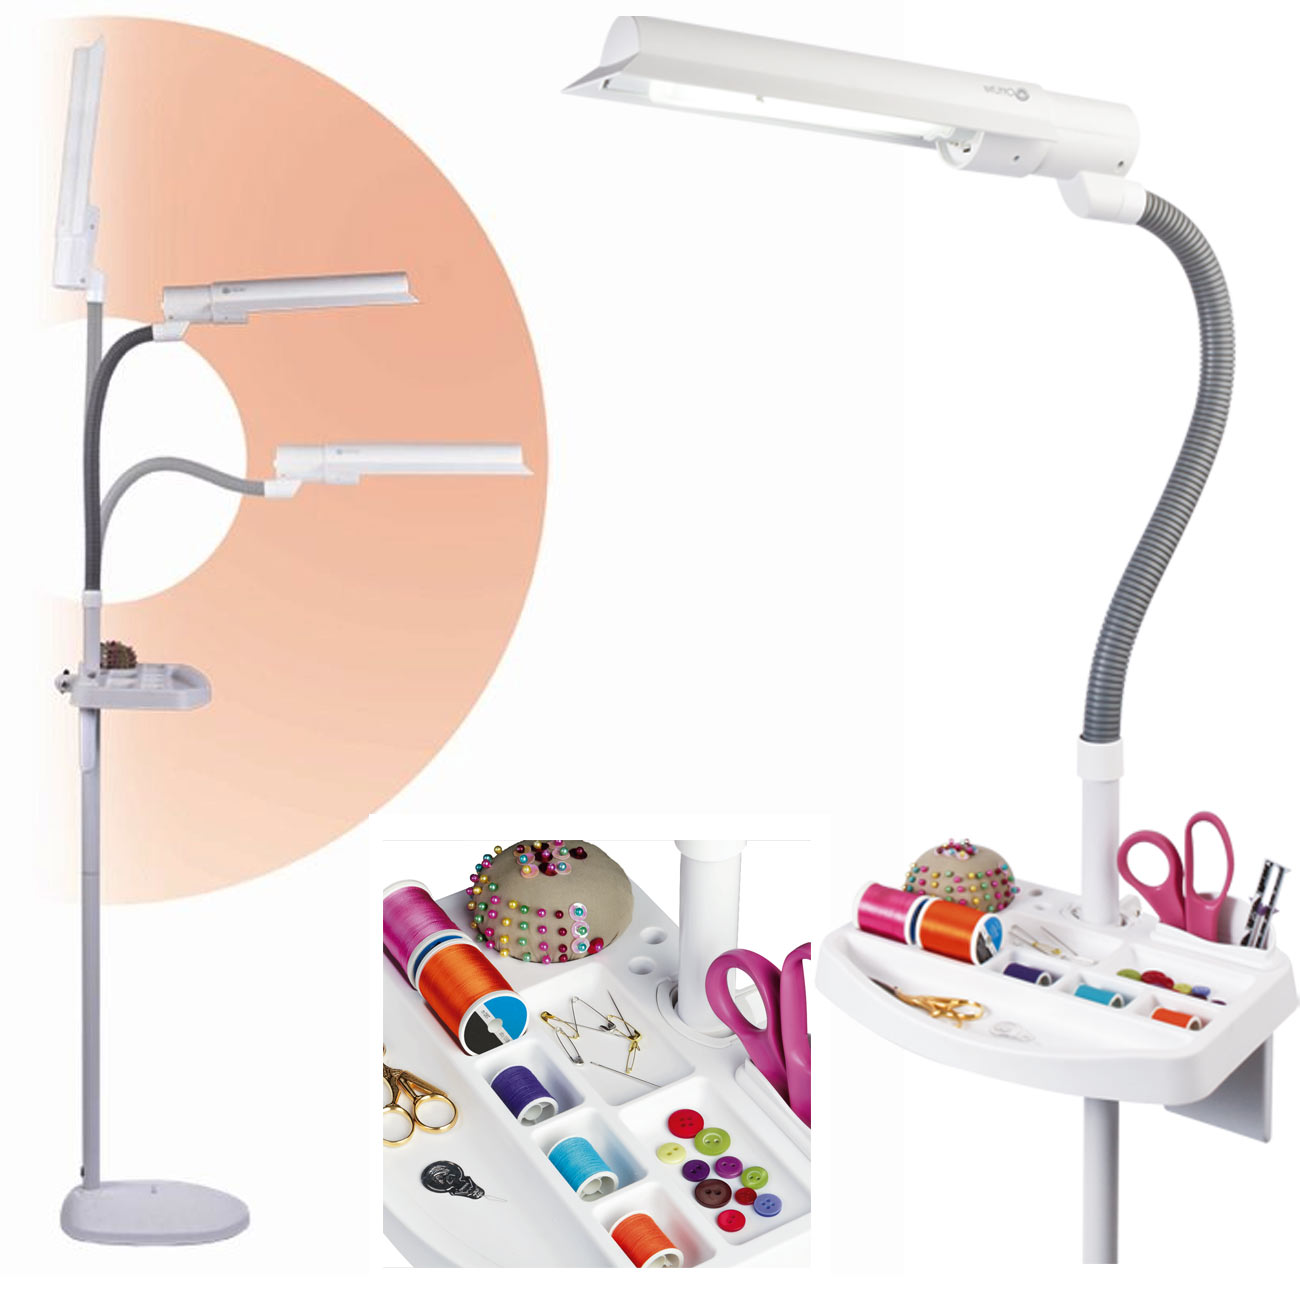 18W Sewers Floor Lamp with Storage Tray